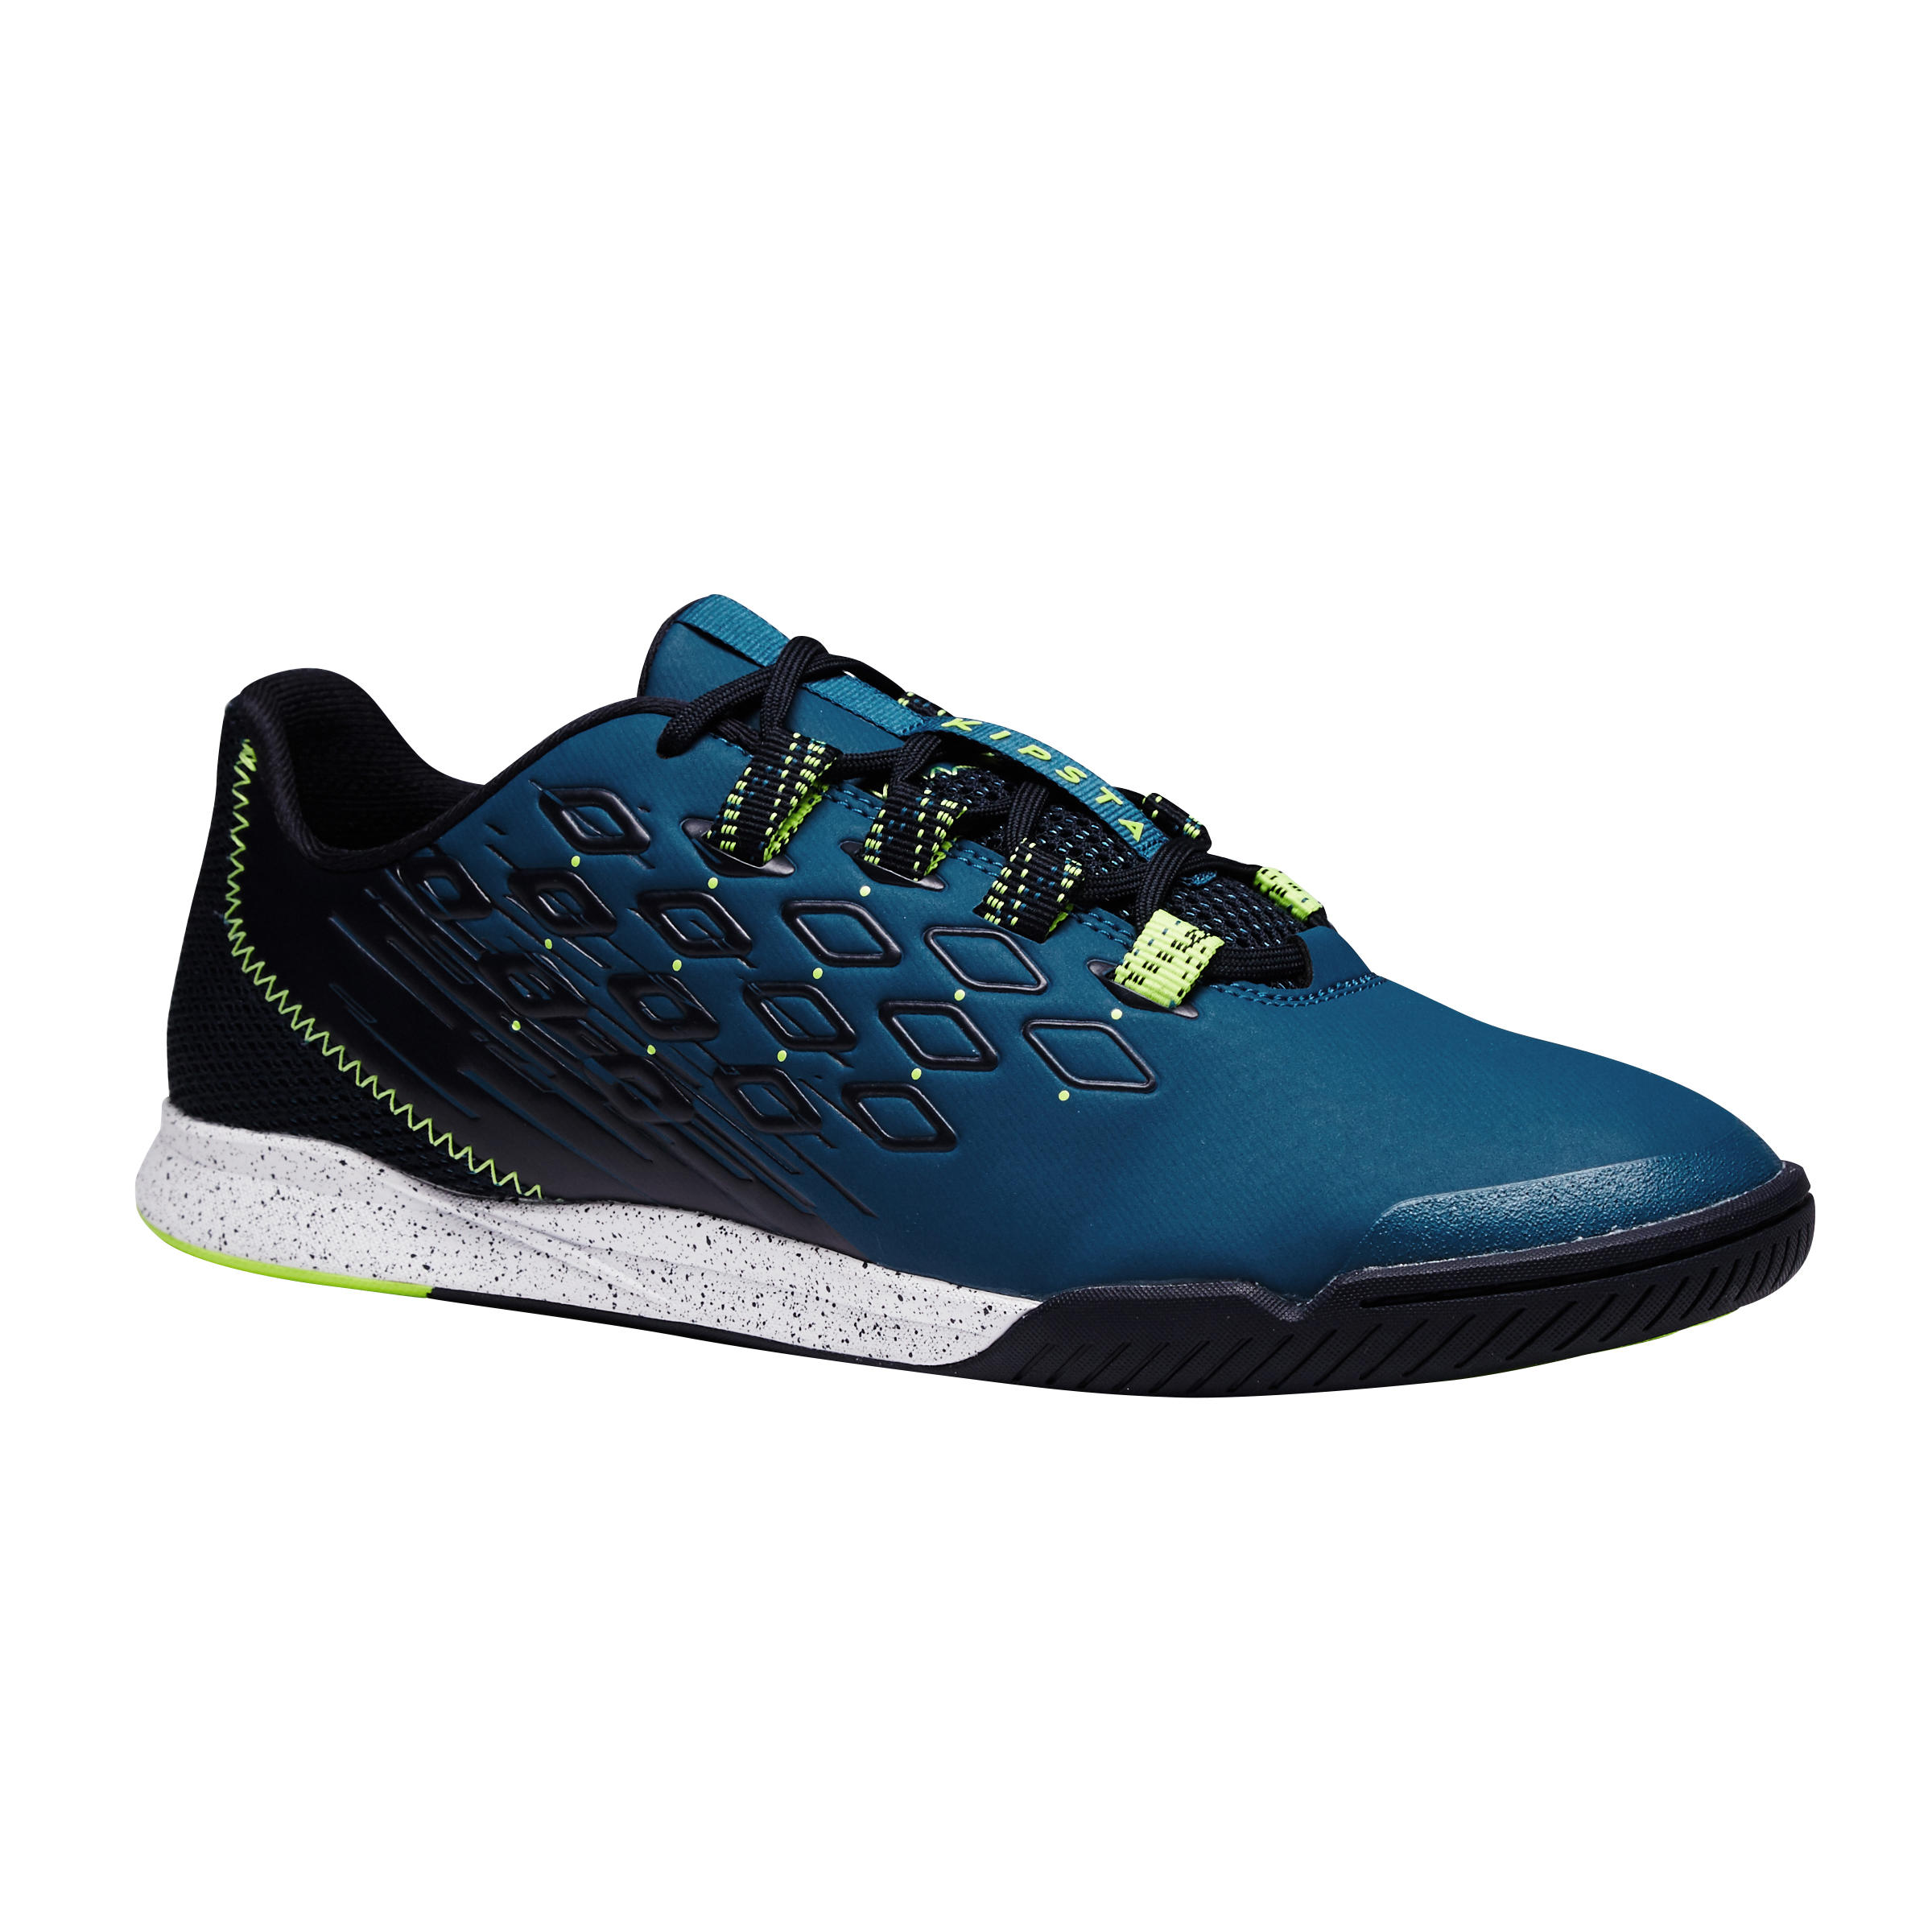 Fifter 900 Adult Futsal Shoes - Blue